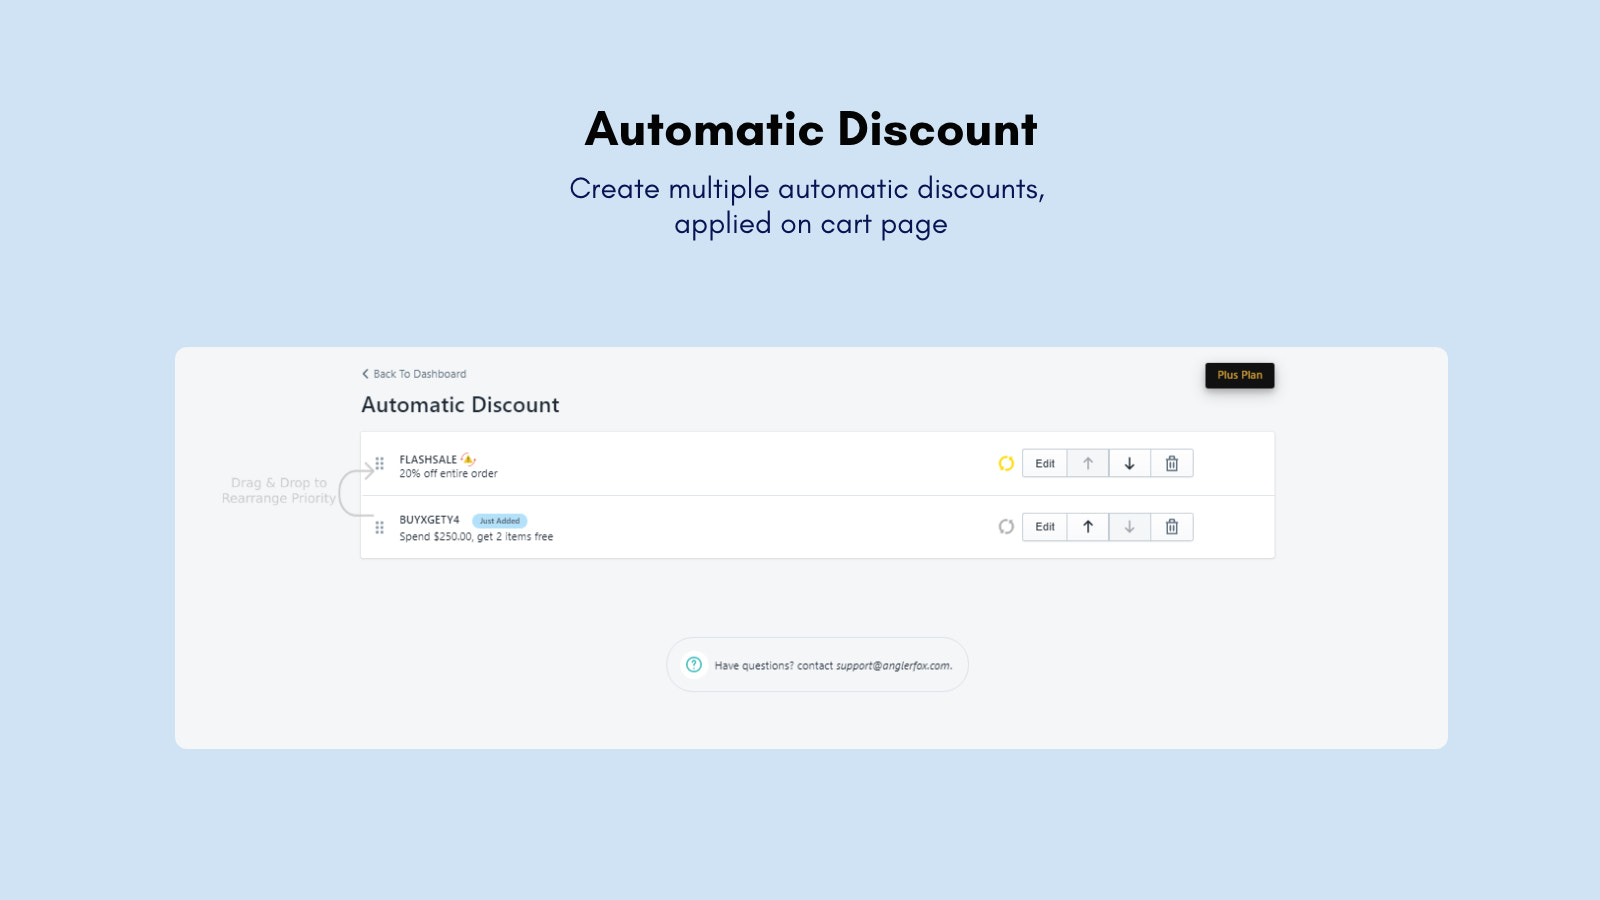 Multiple automatic discounts